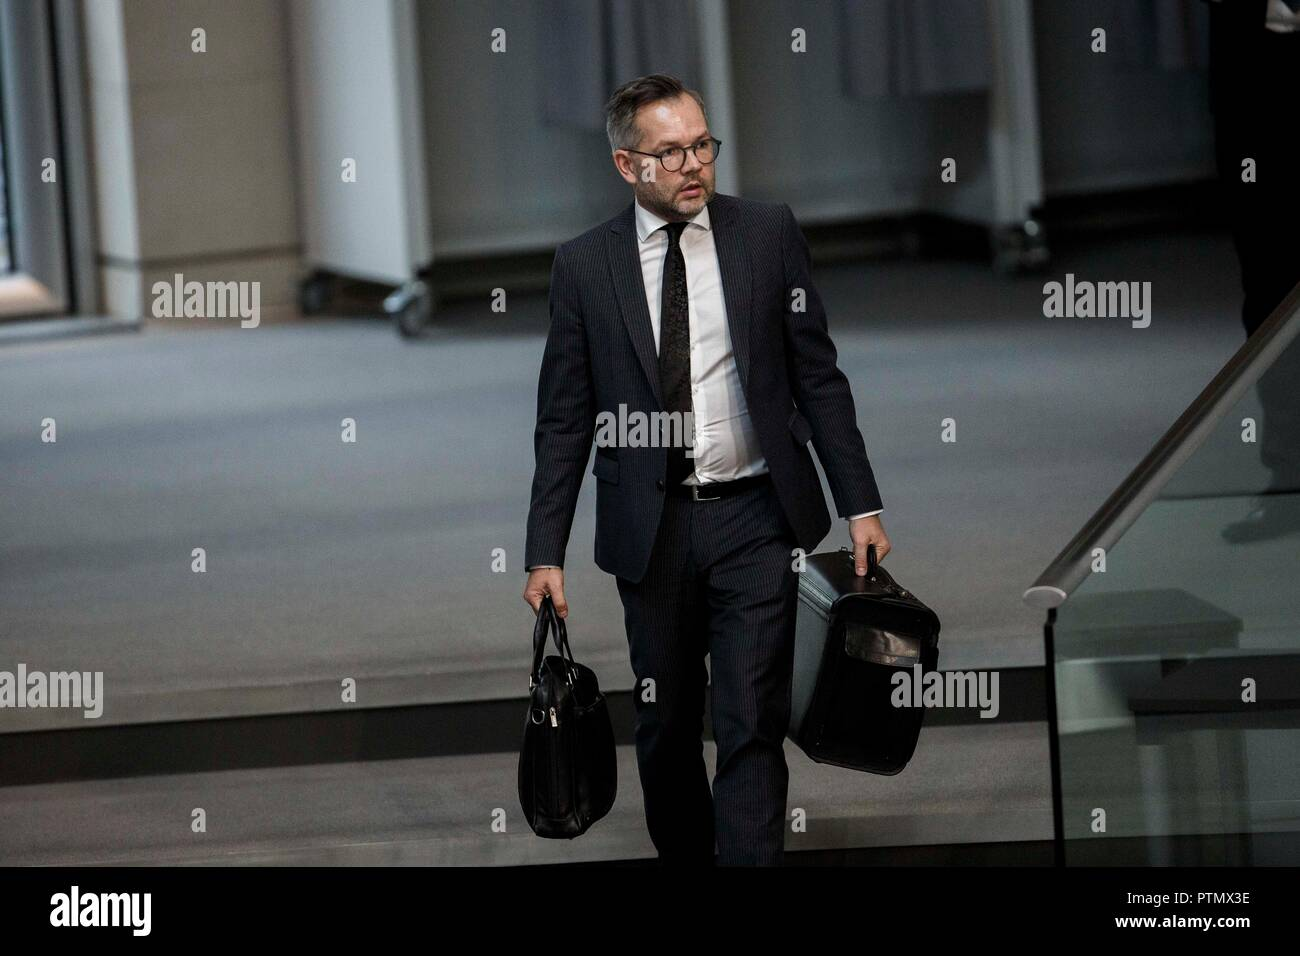 10 October 2018, Berlin: 10 October 2018, Germany, Berlin: Michael Roth, Minister of State for Europe at the Federal Foreign Office, arrives at the 54th session of the German Bundestag during a Question Time to the Federal Government. Photo: Carsten Koall/dpa - Stock Image